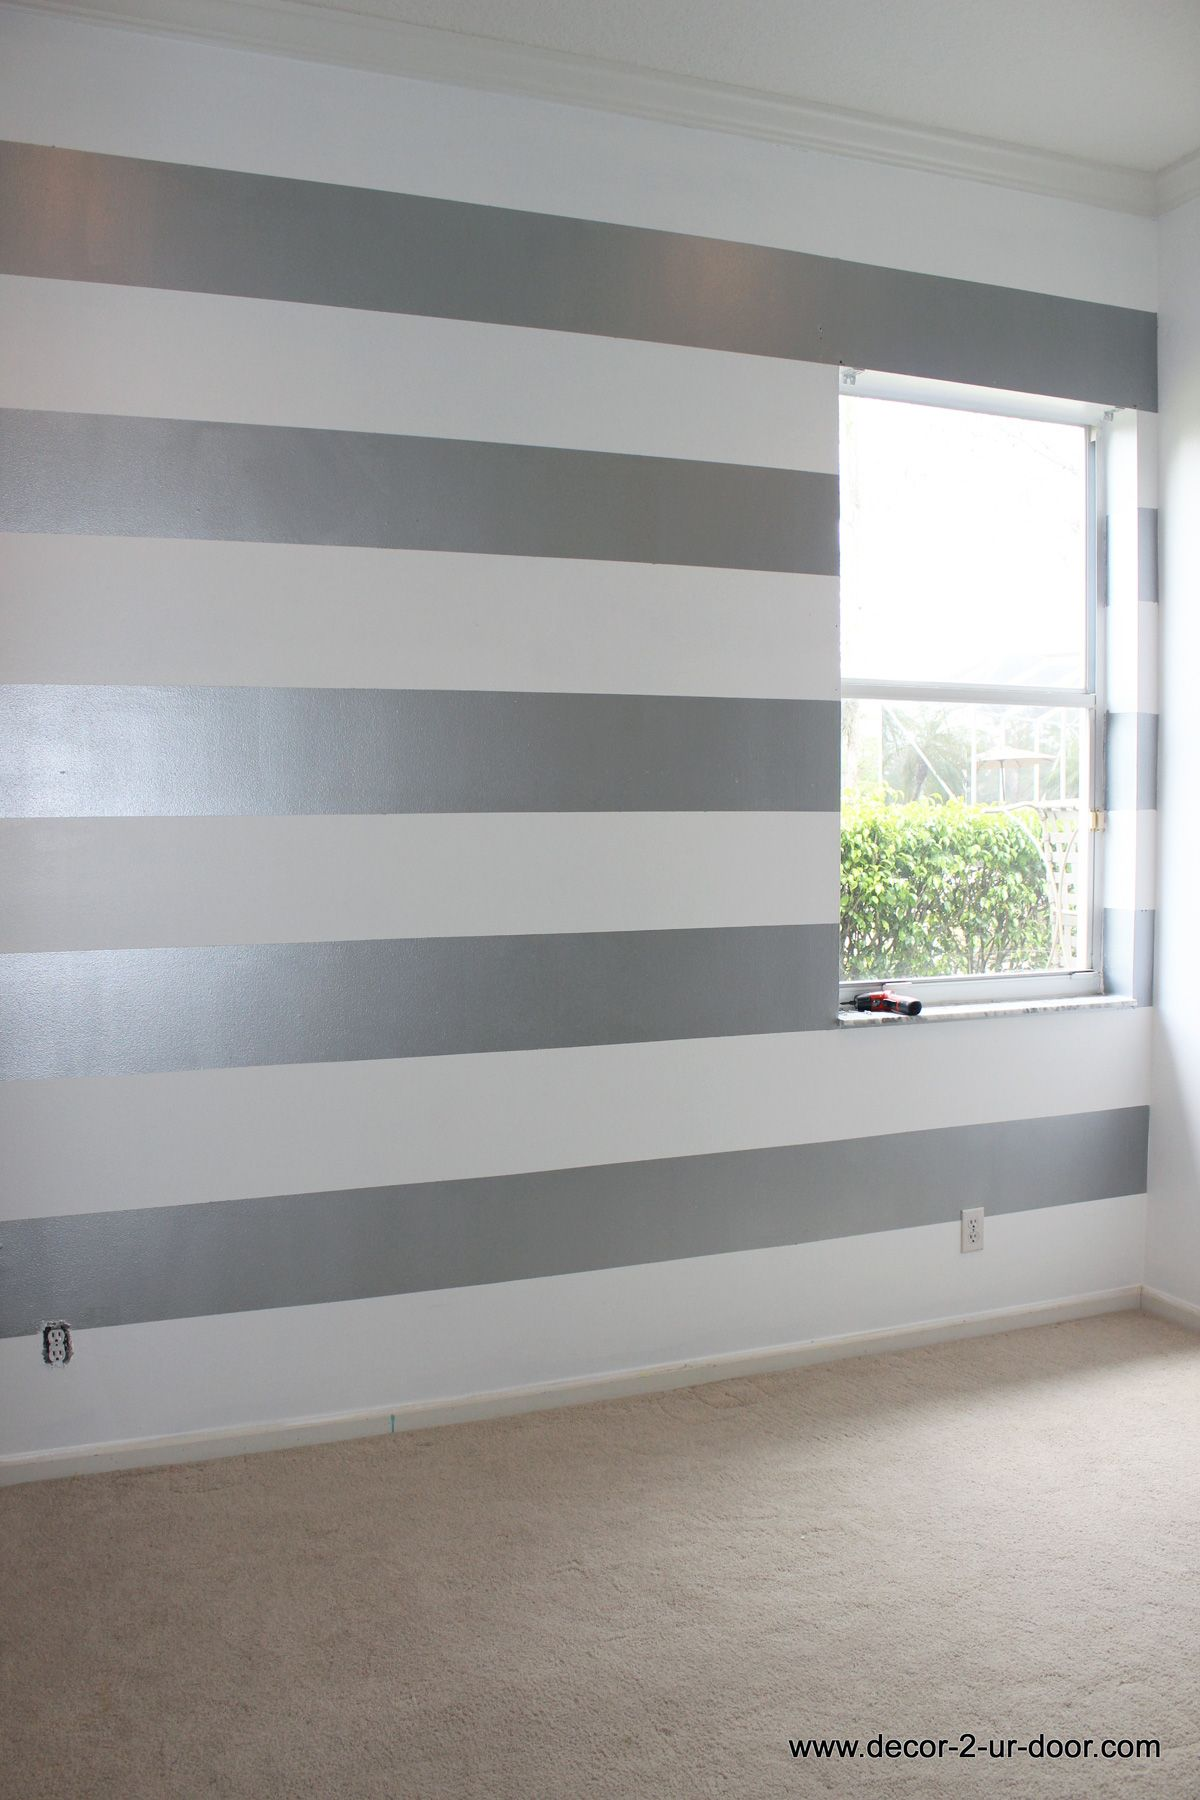 Metallic Striped Accent Wall Love This For A College Apartment Girl Bedroom Walls Striped Walls Striped Walls Living Room